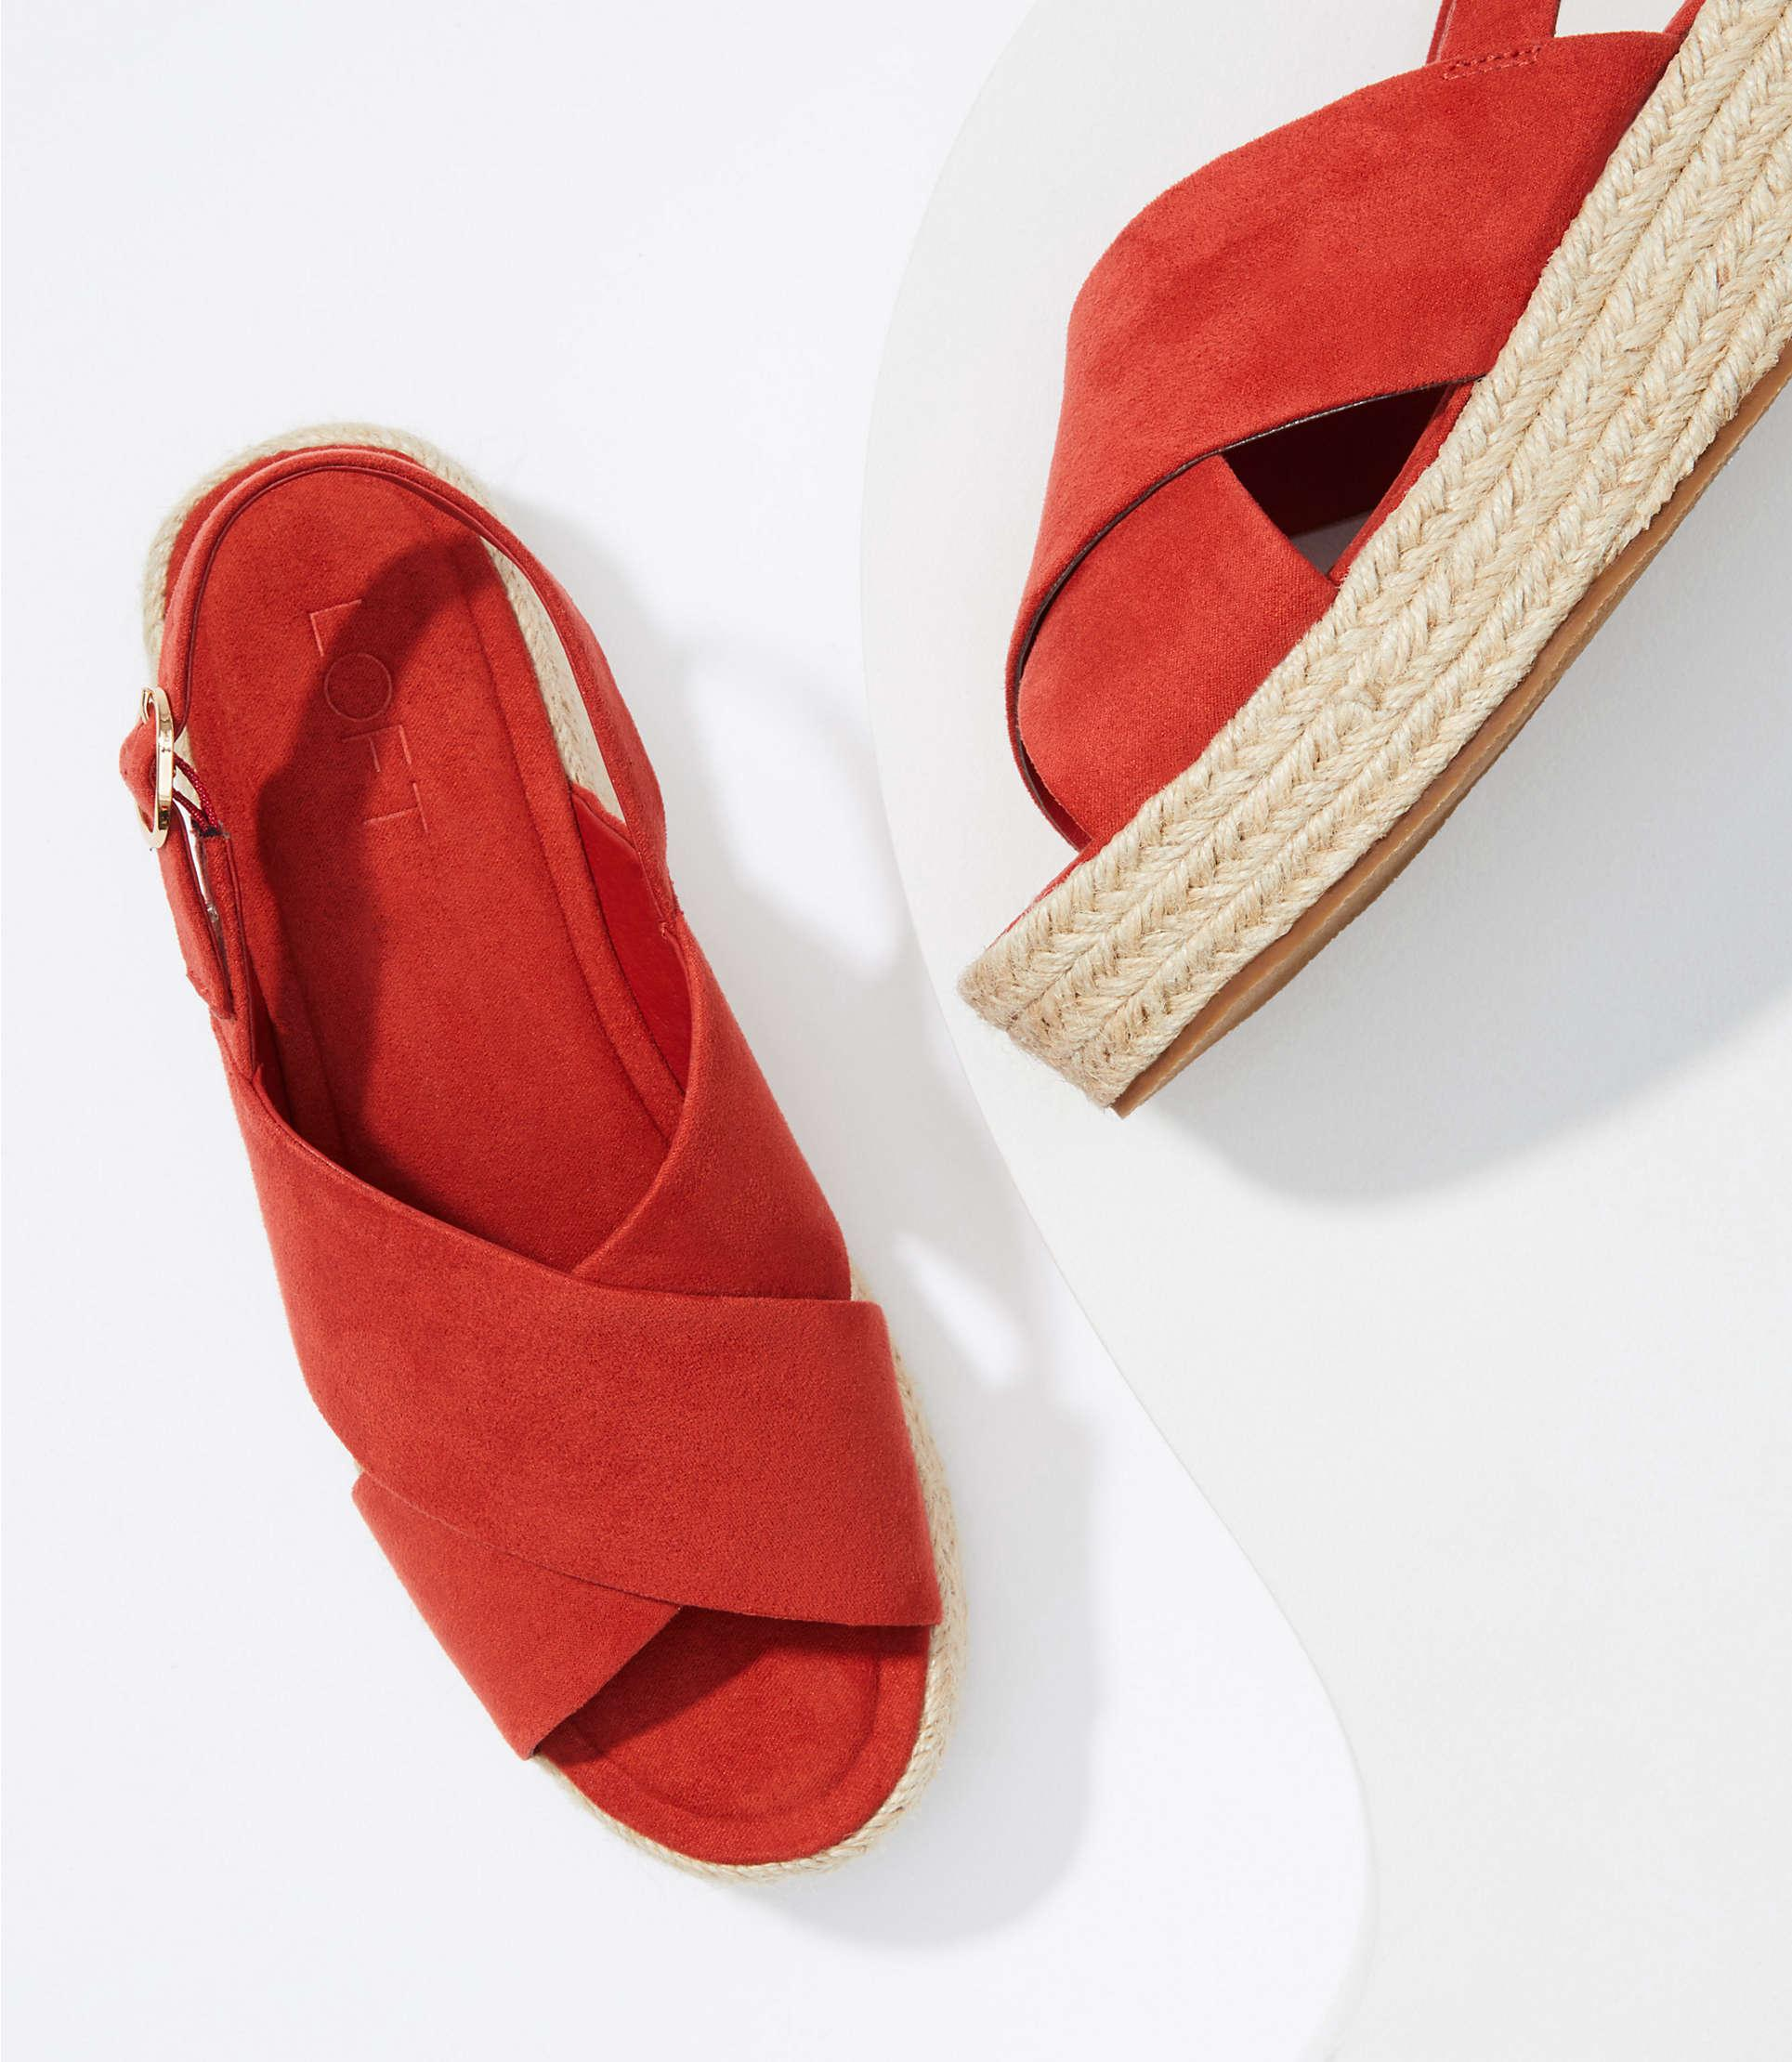 478264e52d26 Lyst - LOFT Espadrille Slingback Sandals in Red